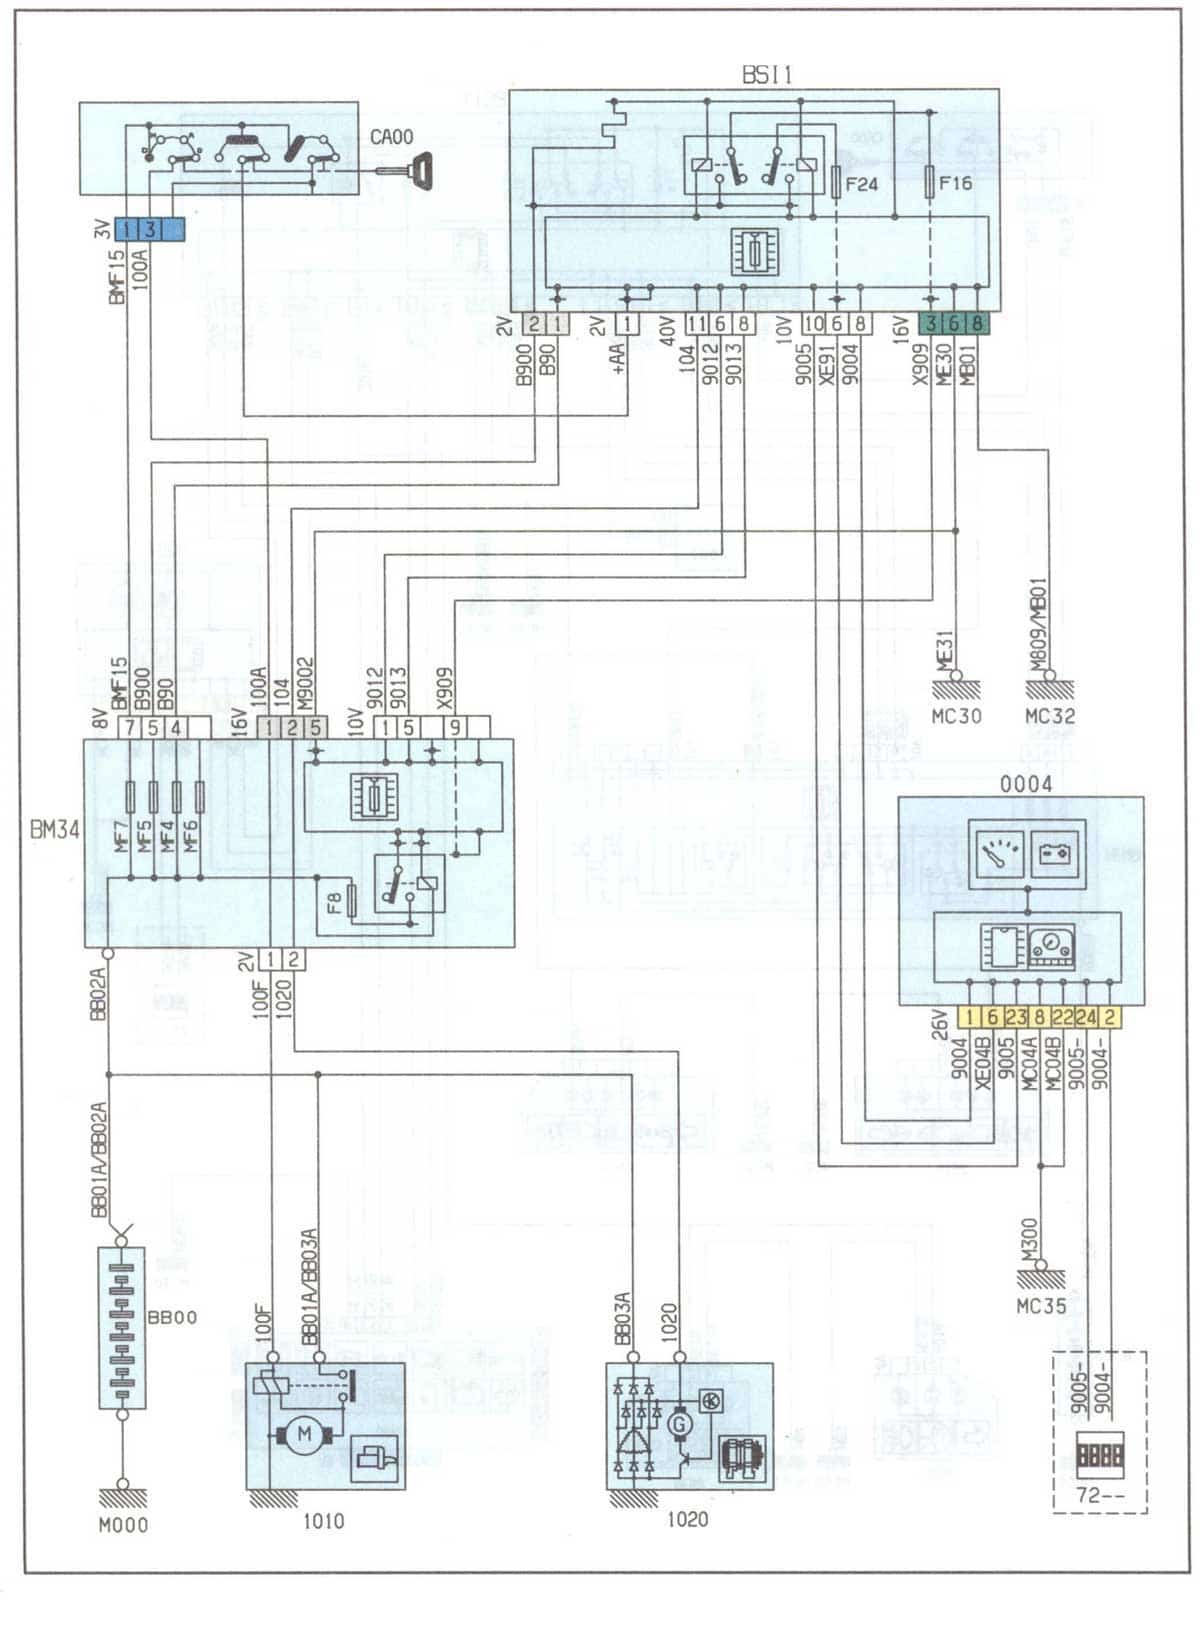 Citroen C5 Wiring Diagram Pdf - Wiring Diagram | Citroen C5 Wiring Diagram Free |  | Wiring Diagram